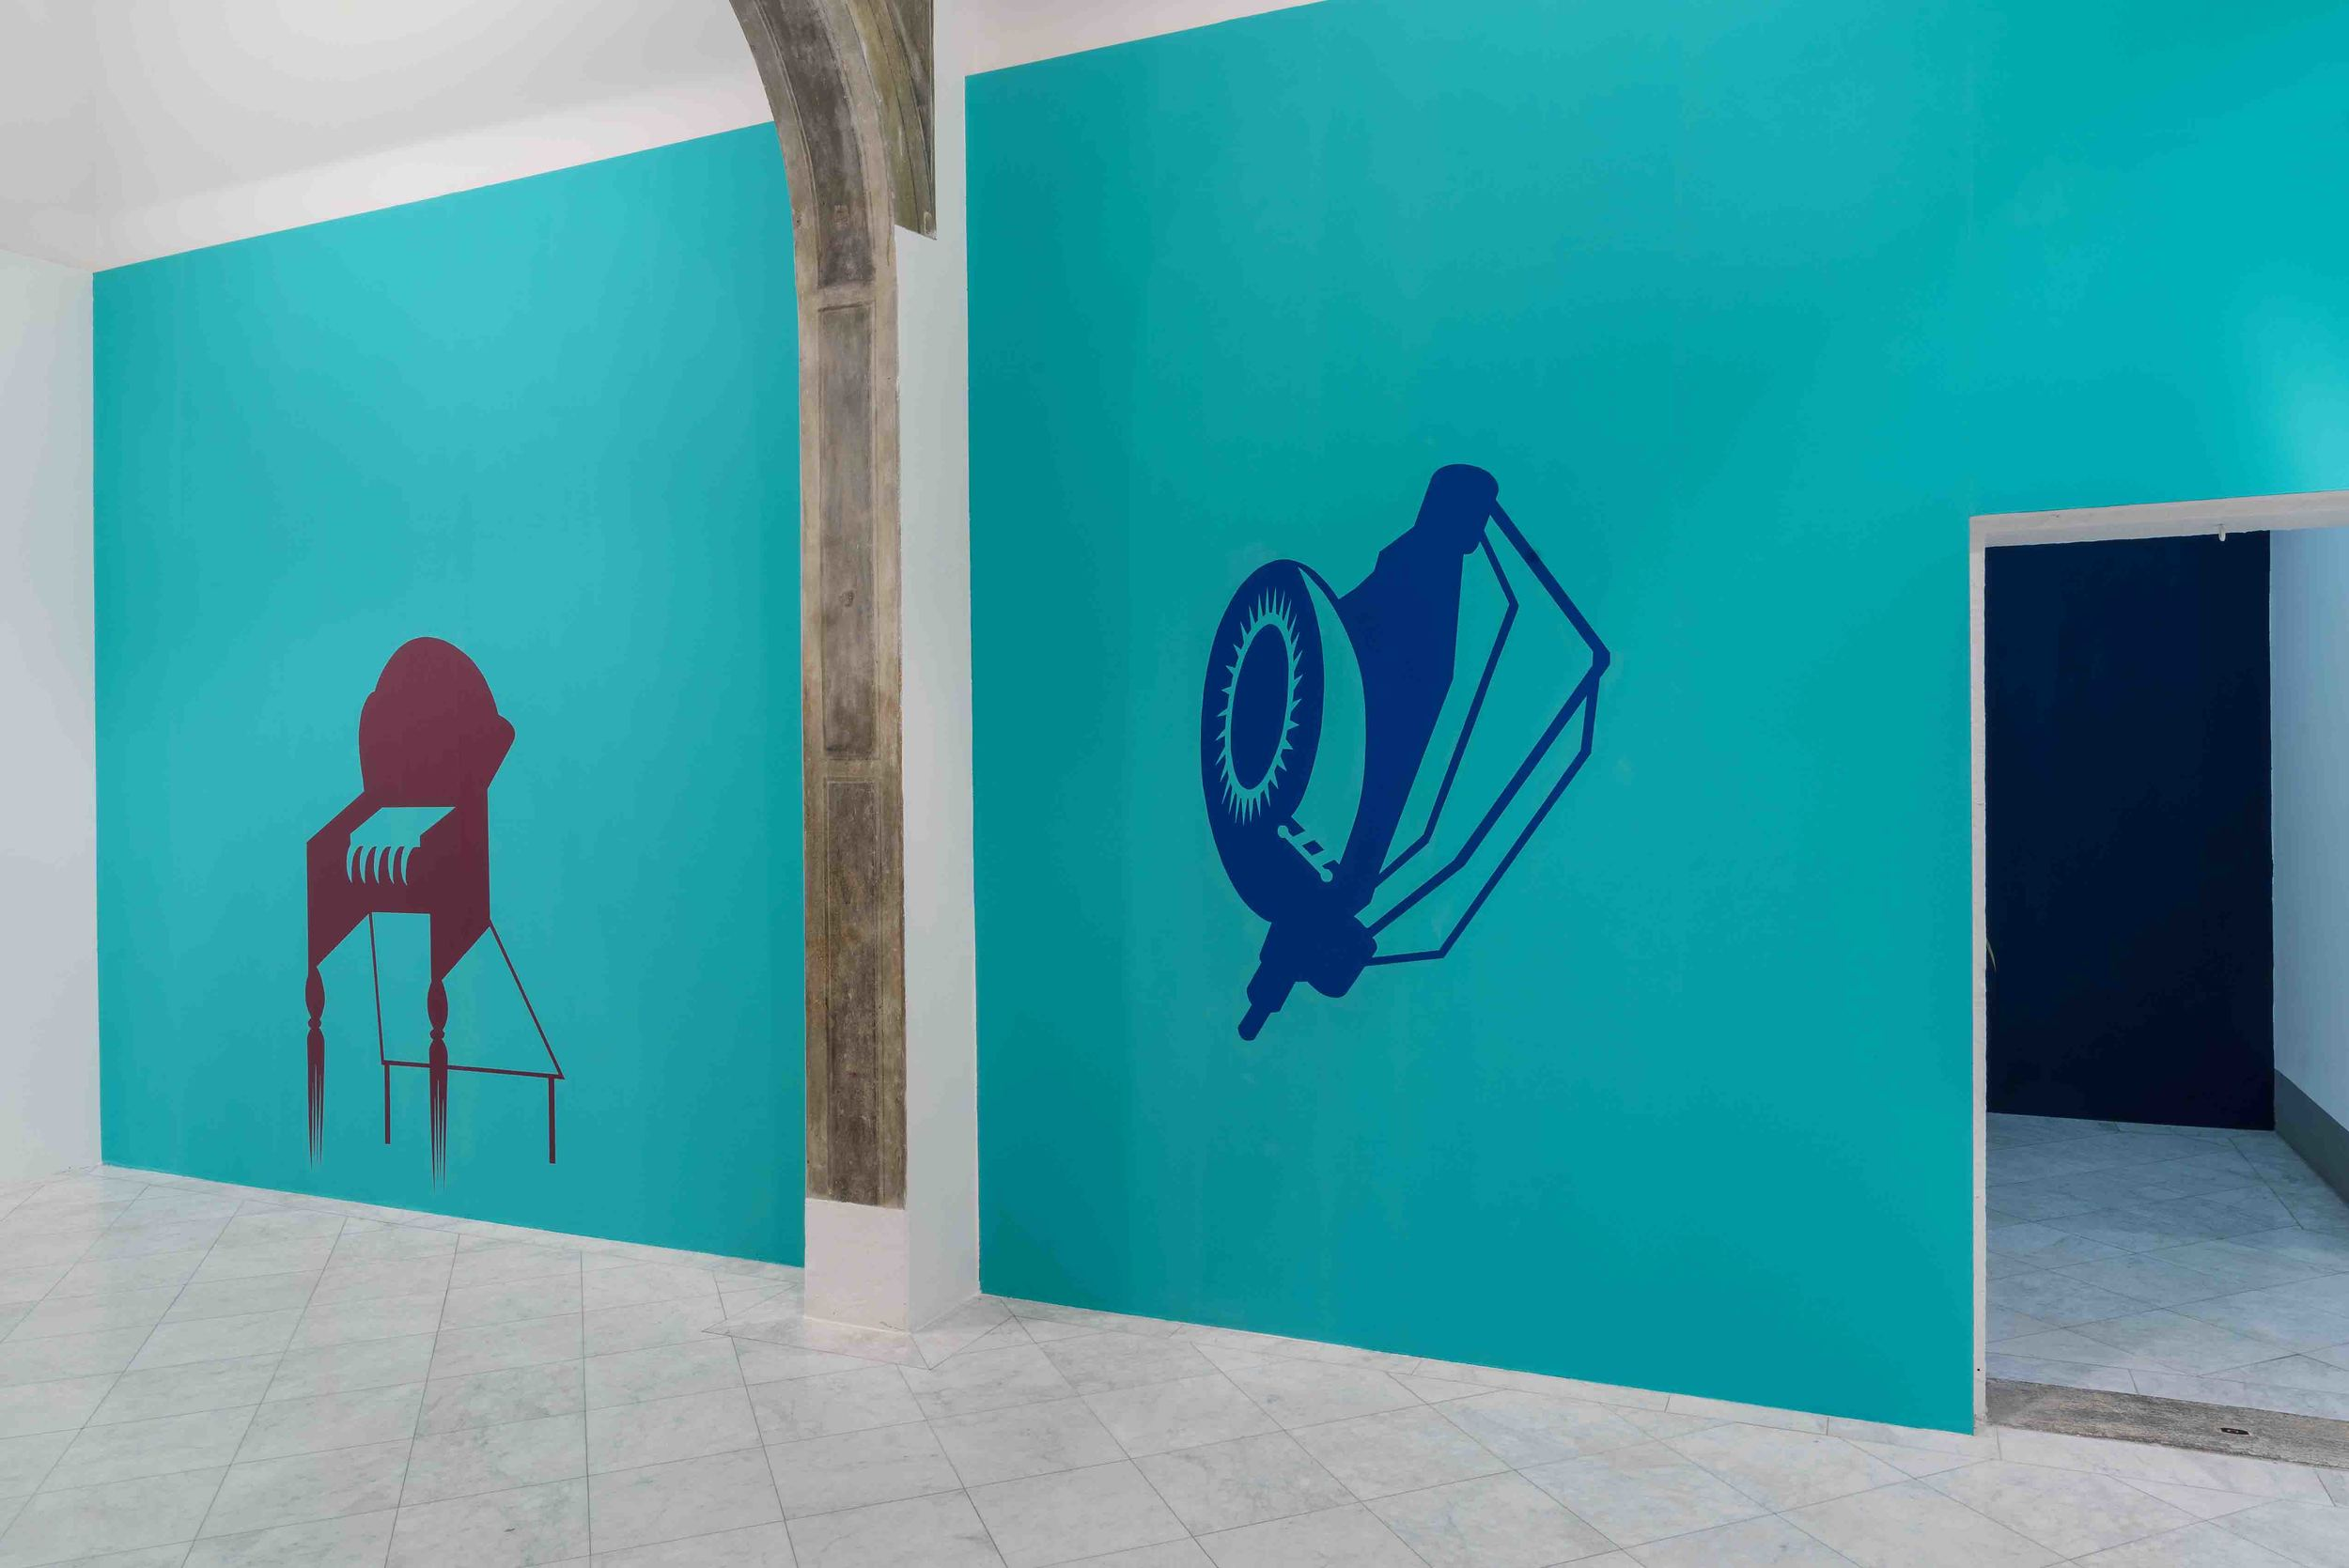 Mona Marzouk, Renovabitvr, acrylic colors, 2015. Installation view at Villa Romana. Photo credit:   Elzbieta Bialkowska.